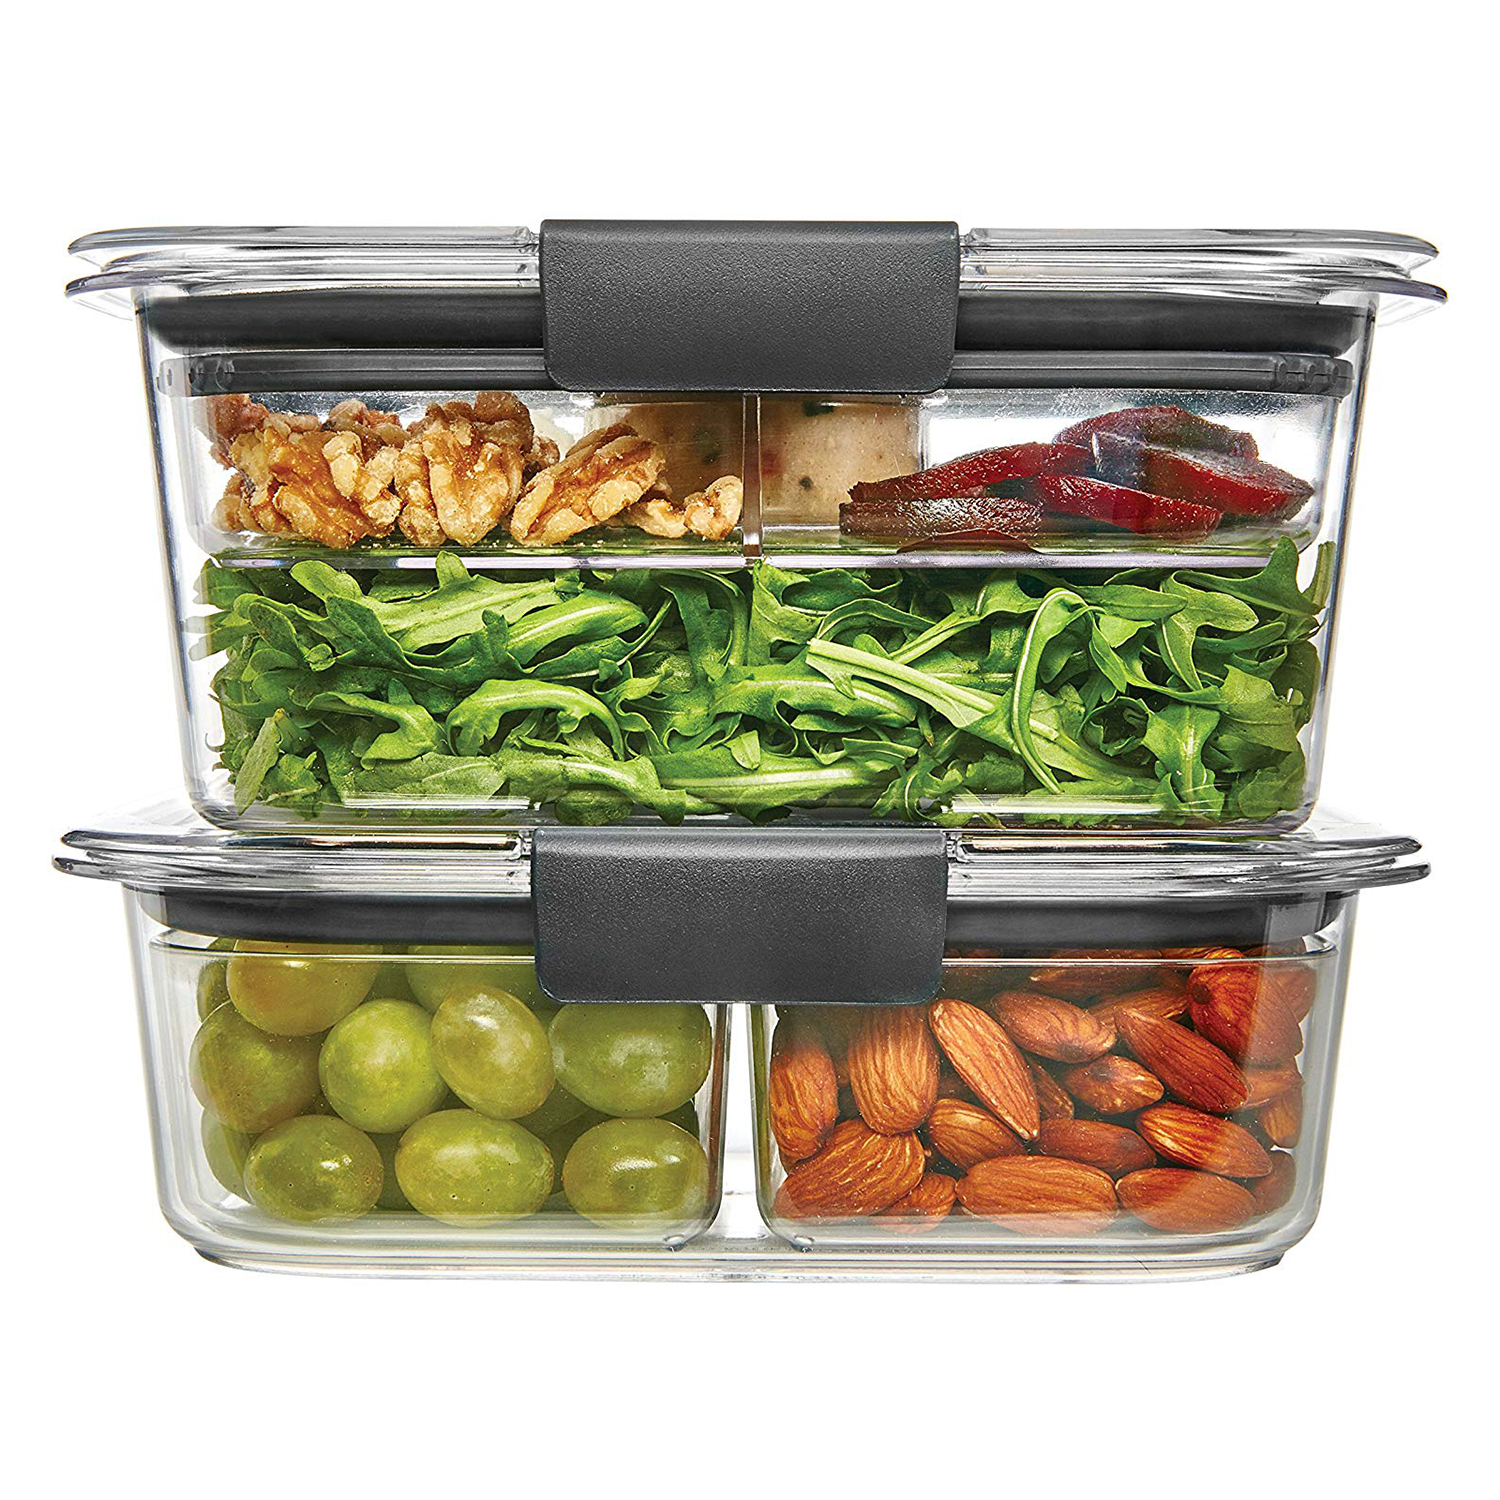 Rubbermaid Brilliance Food Storage Container Nine-Piece Combo Kit